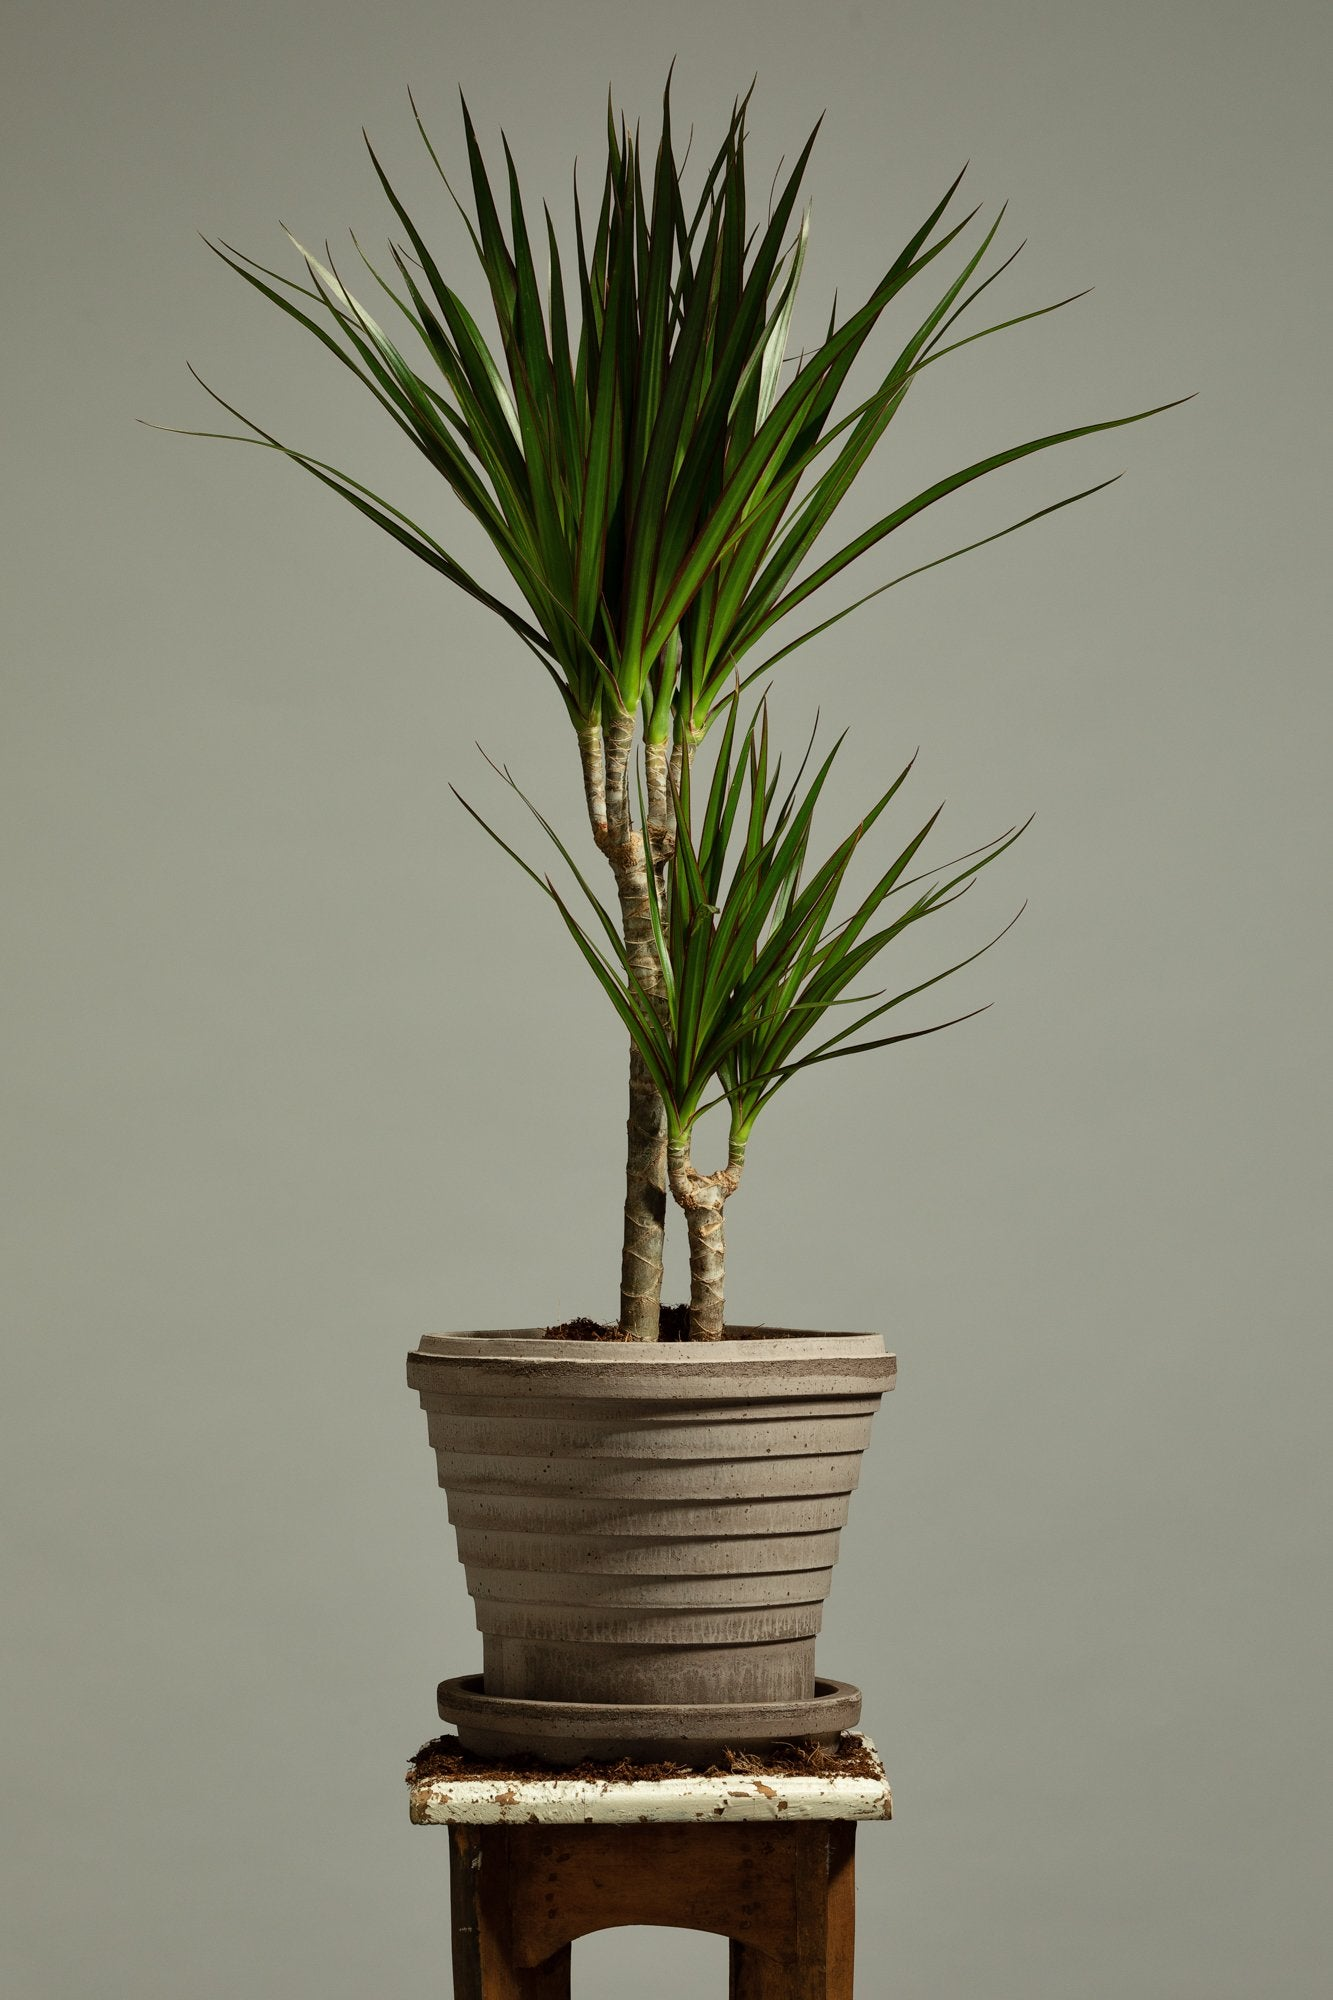 The Dragon Tree houseplant, repotted in a Berg's Neptune Nordic Grey indoor pot.